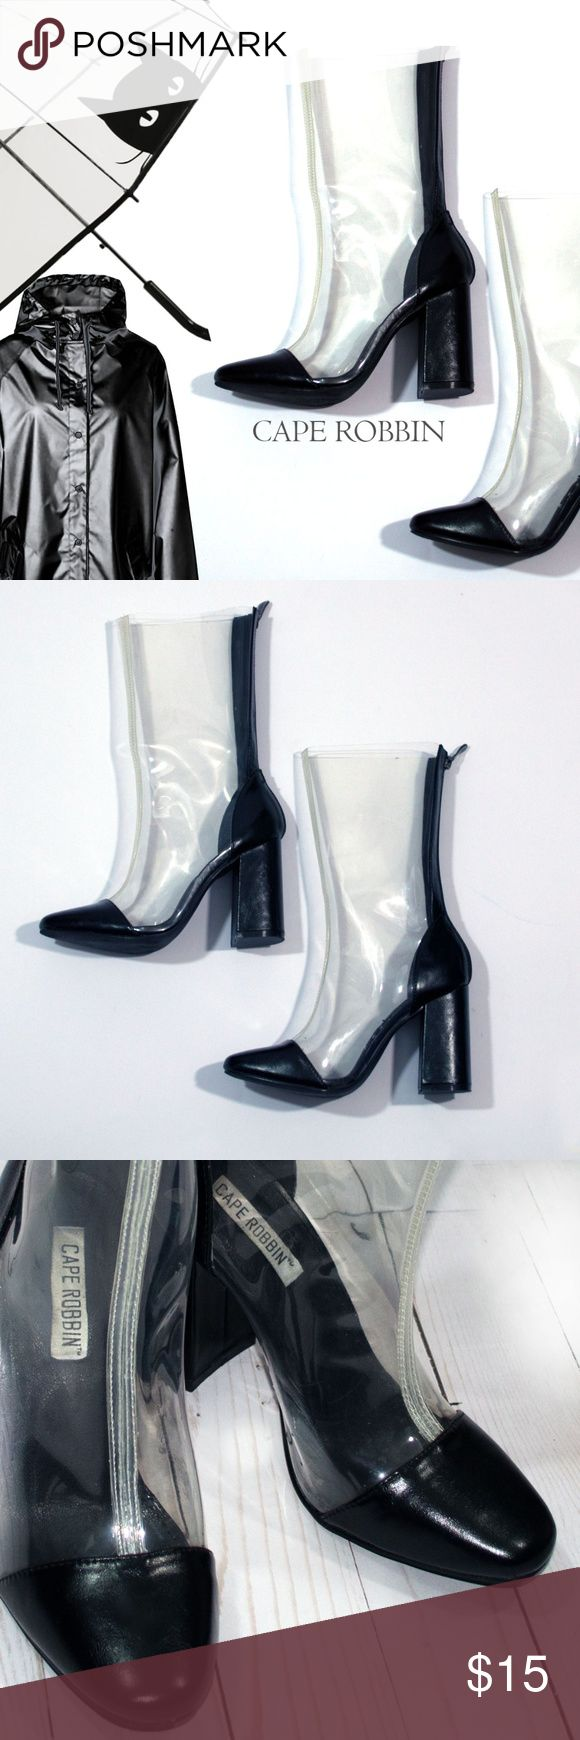 """Unique Cape Robbin Clear High Heels Rain Boot Blk Very Unique Clear High Heel Rain Boots with Back Zipper made by Cape Robbin, This company makes very unique rain boots. Worn Once, practically brand new.  Size:  6.5  Heel Height:  3"""" Height: 12"""" Toe to Heel: 9""""  Vegan Material Cape Robbin Shoes Winter & Rain Boots"""